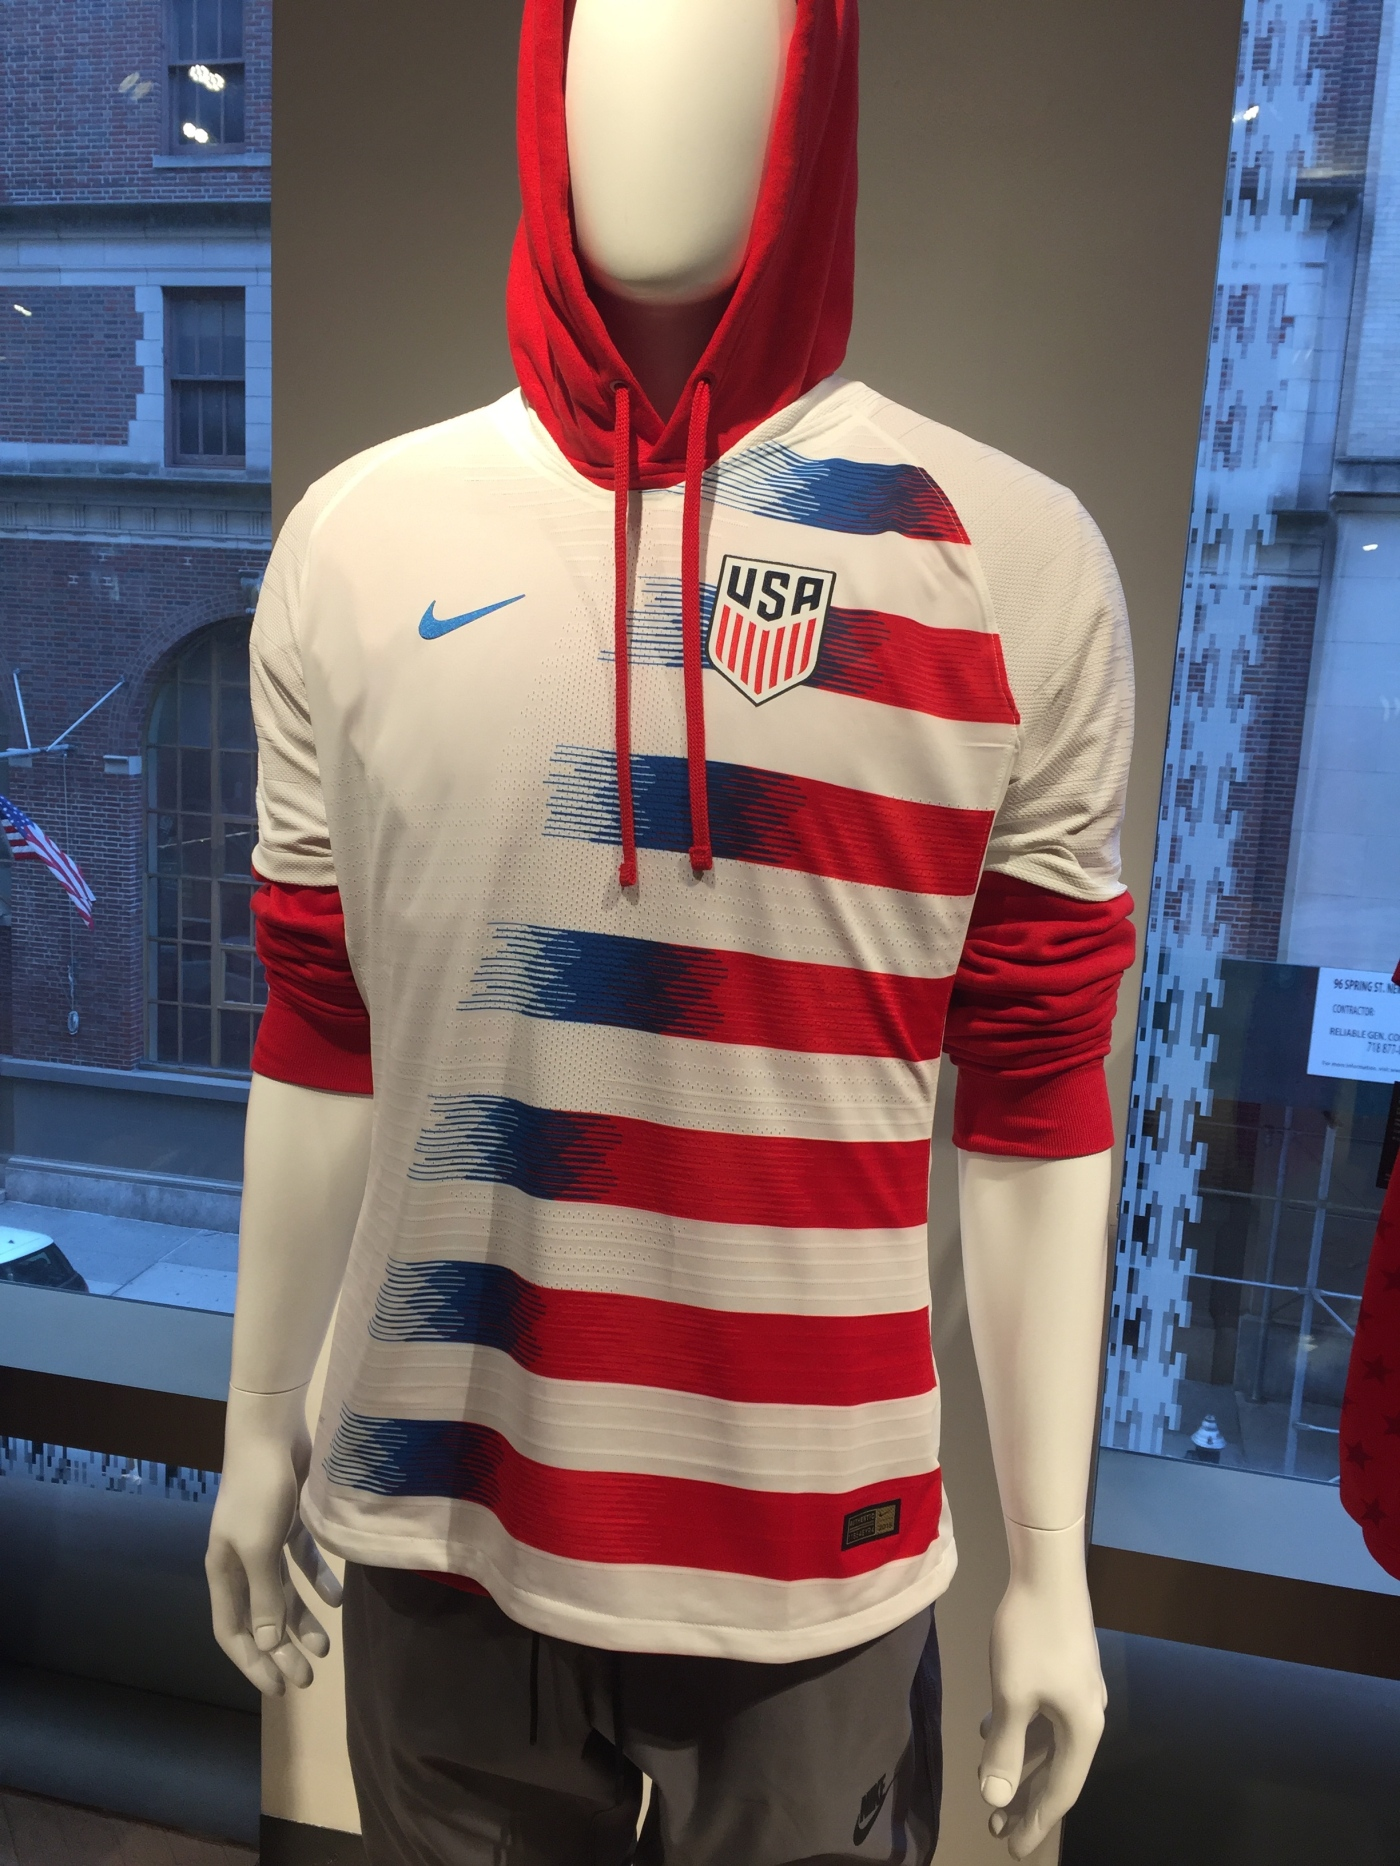 fee6cda788b This one is just for the collectors as this new Nike kit made for the USA  will not be featured in Russia in 2018. The kit pays homage to the American  flag ...